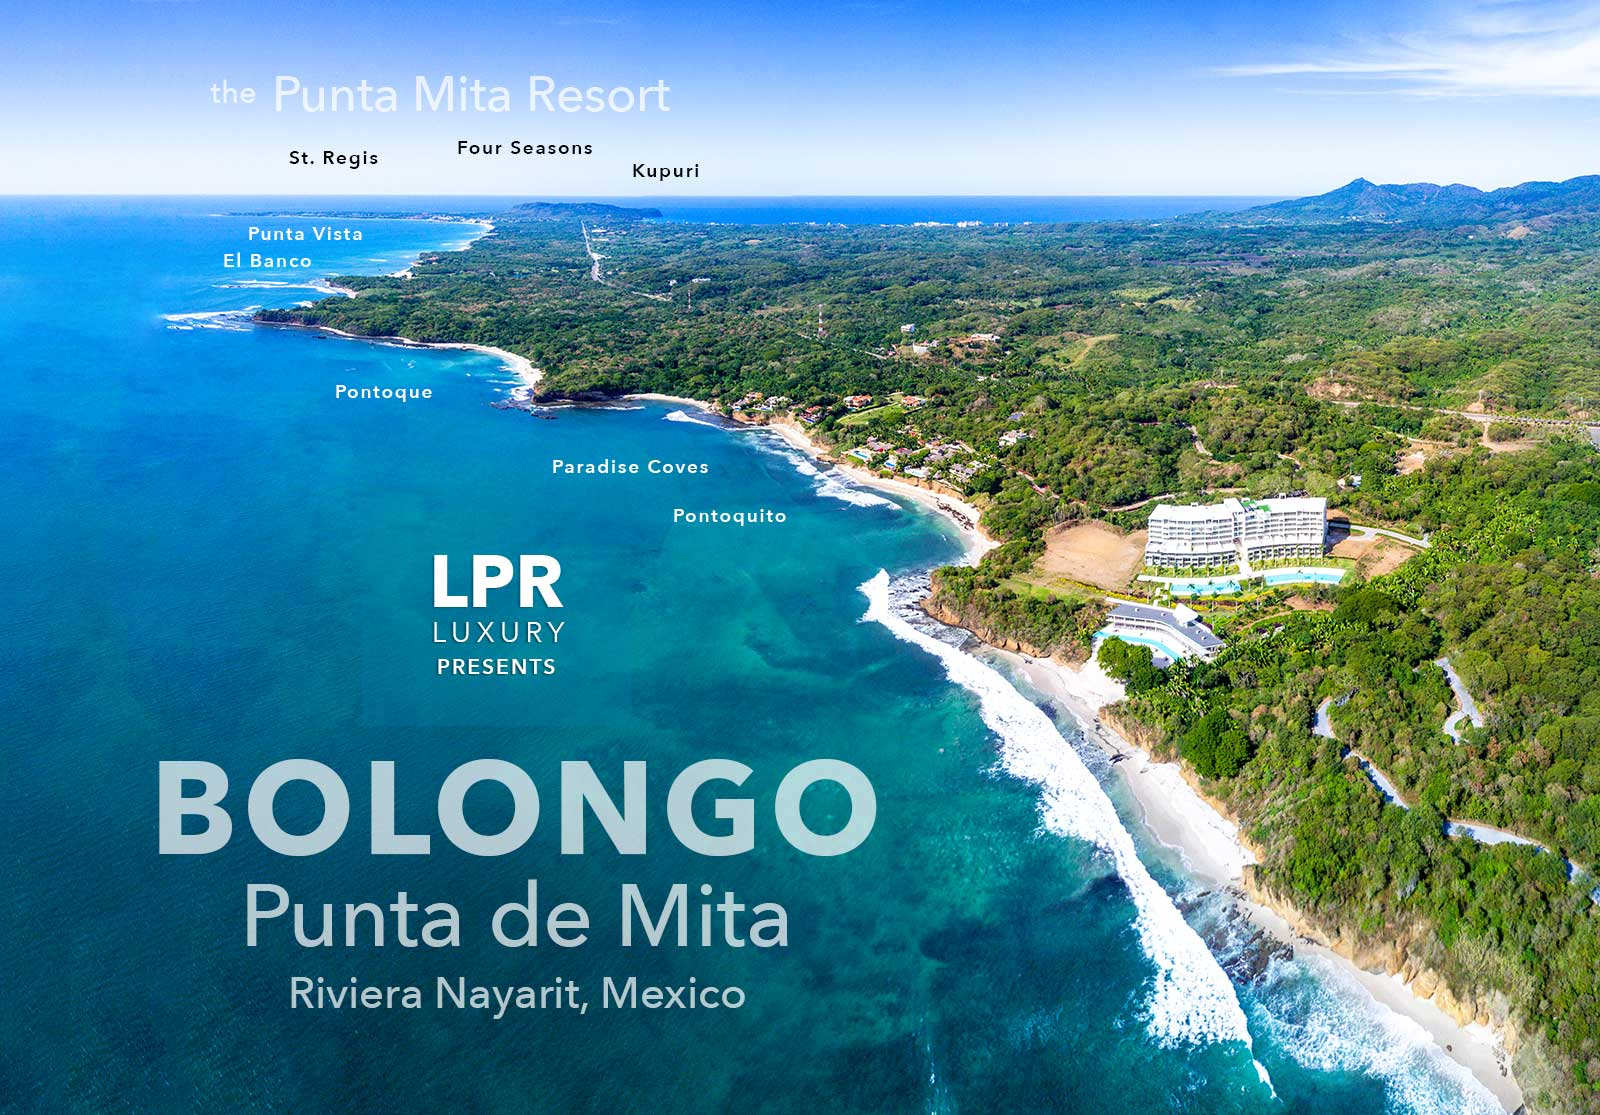 Bolongo - Luxury Punta de Mita Residences - Condos and Villas - Real Estate and Vacation Rentals - Riviera Nayarit, Mexico